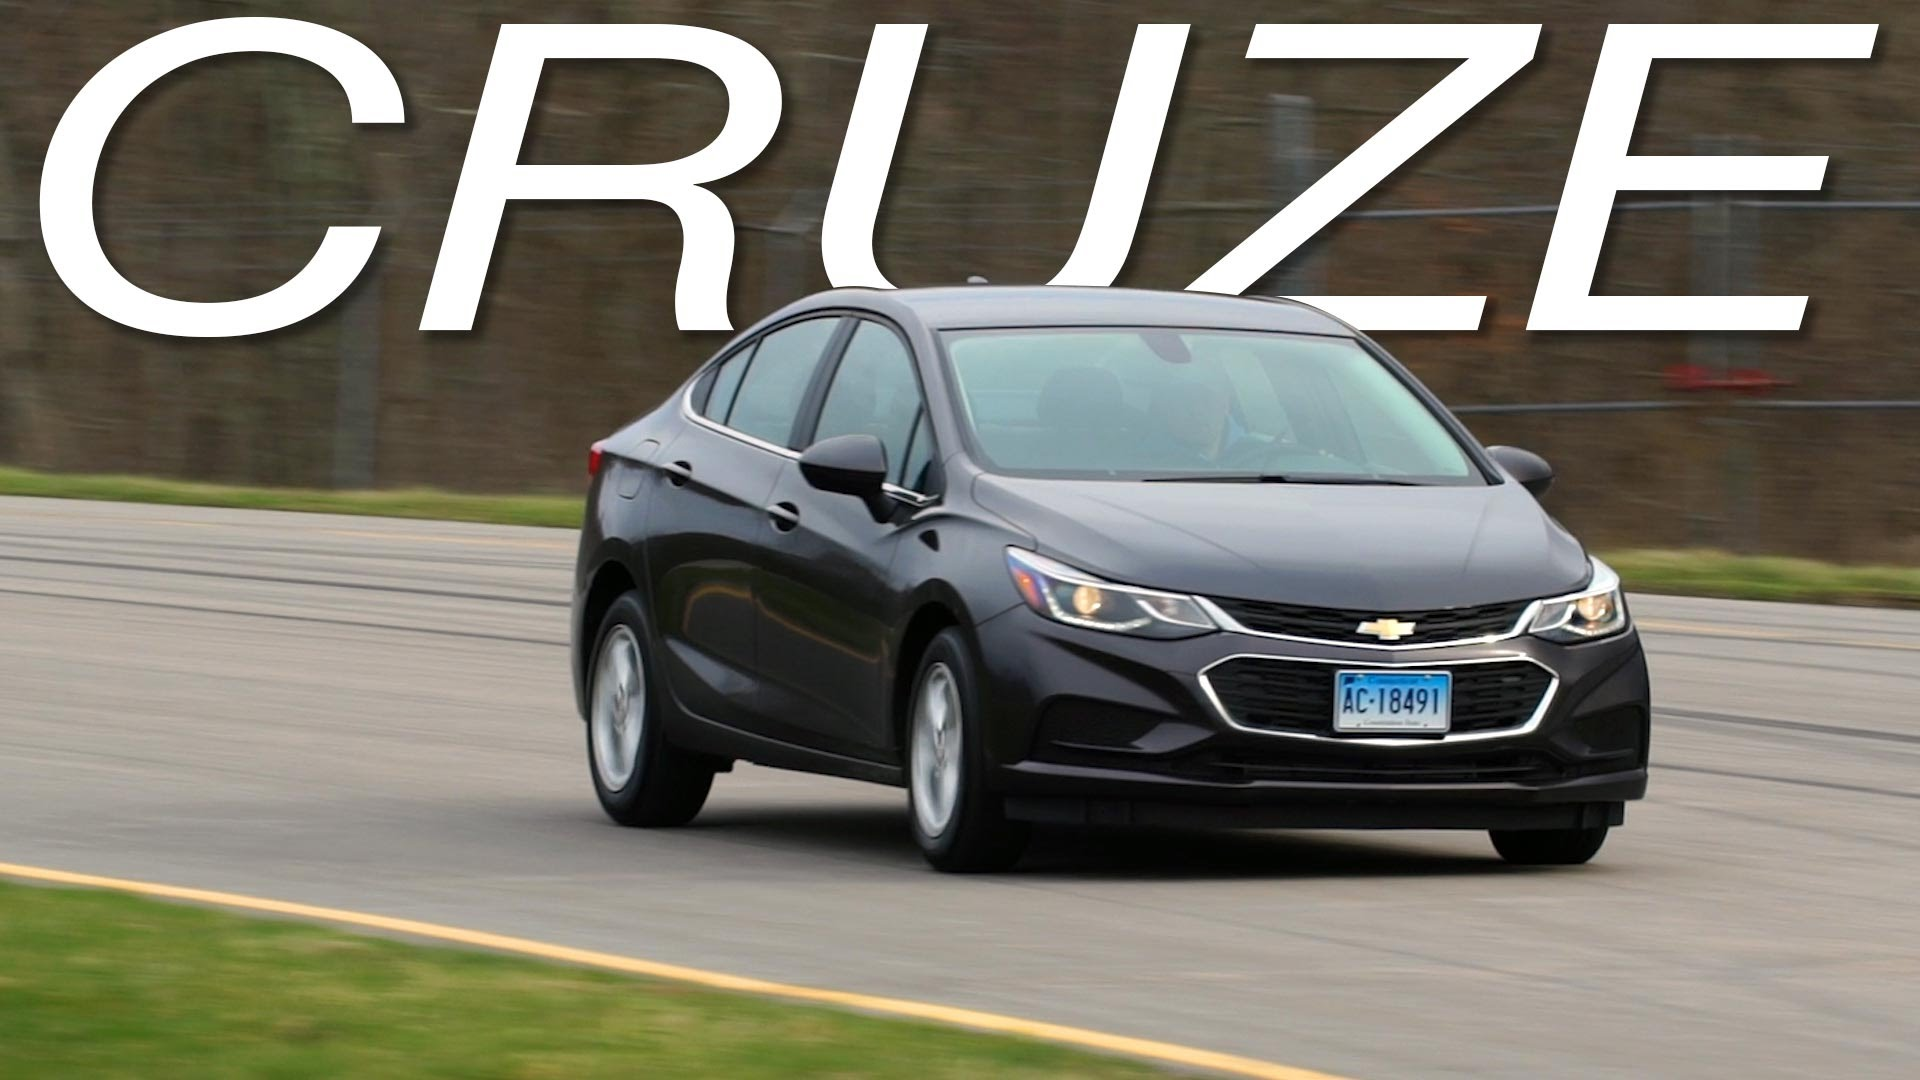 2016 Chevrolet Cruze Is Another Decent Compact Says Consumer Reports